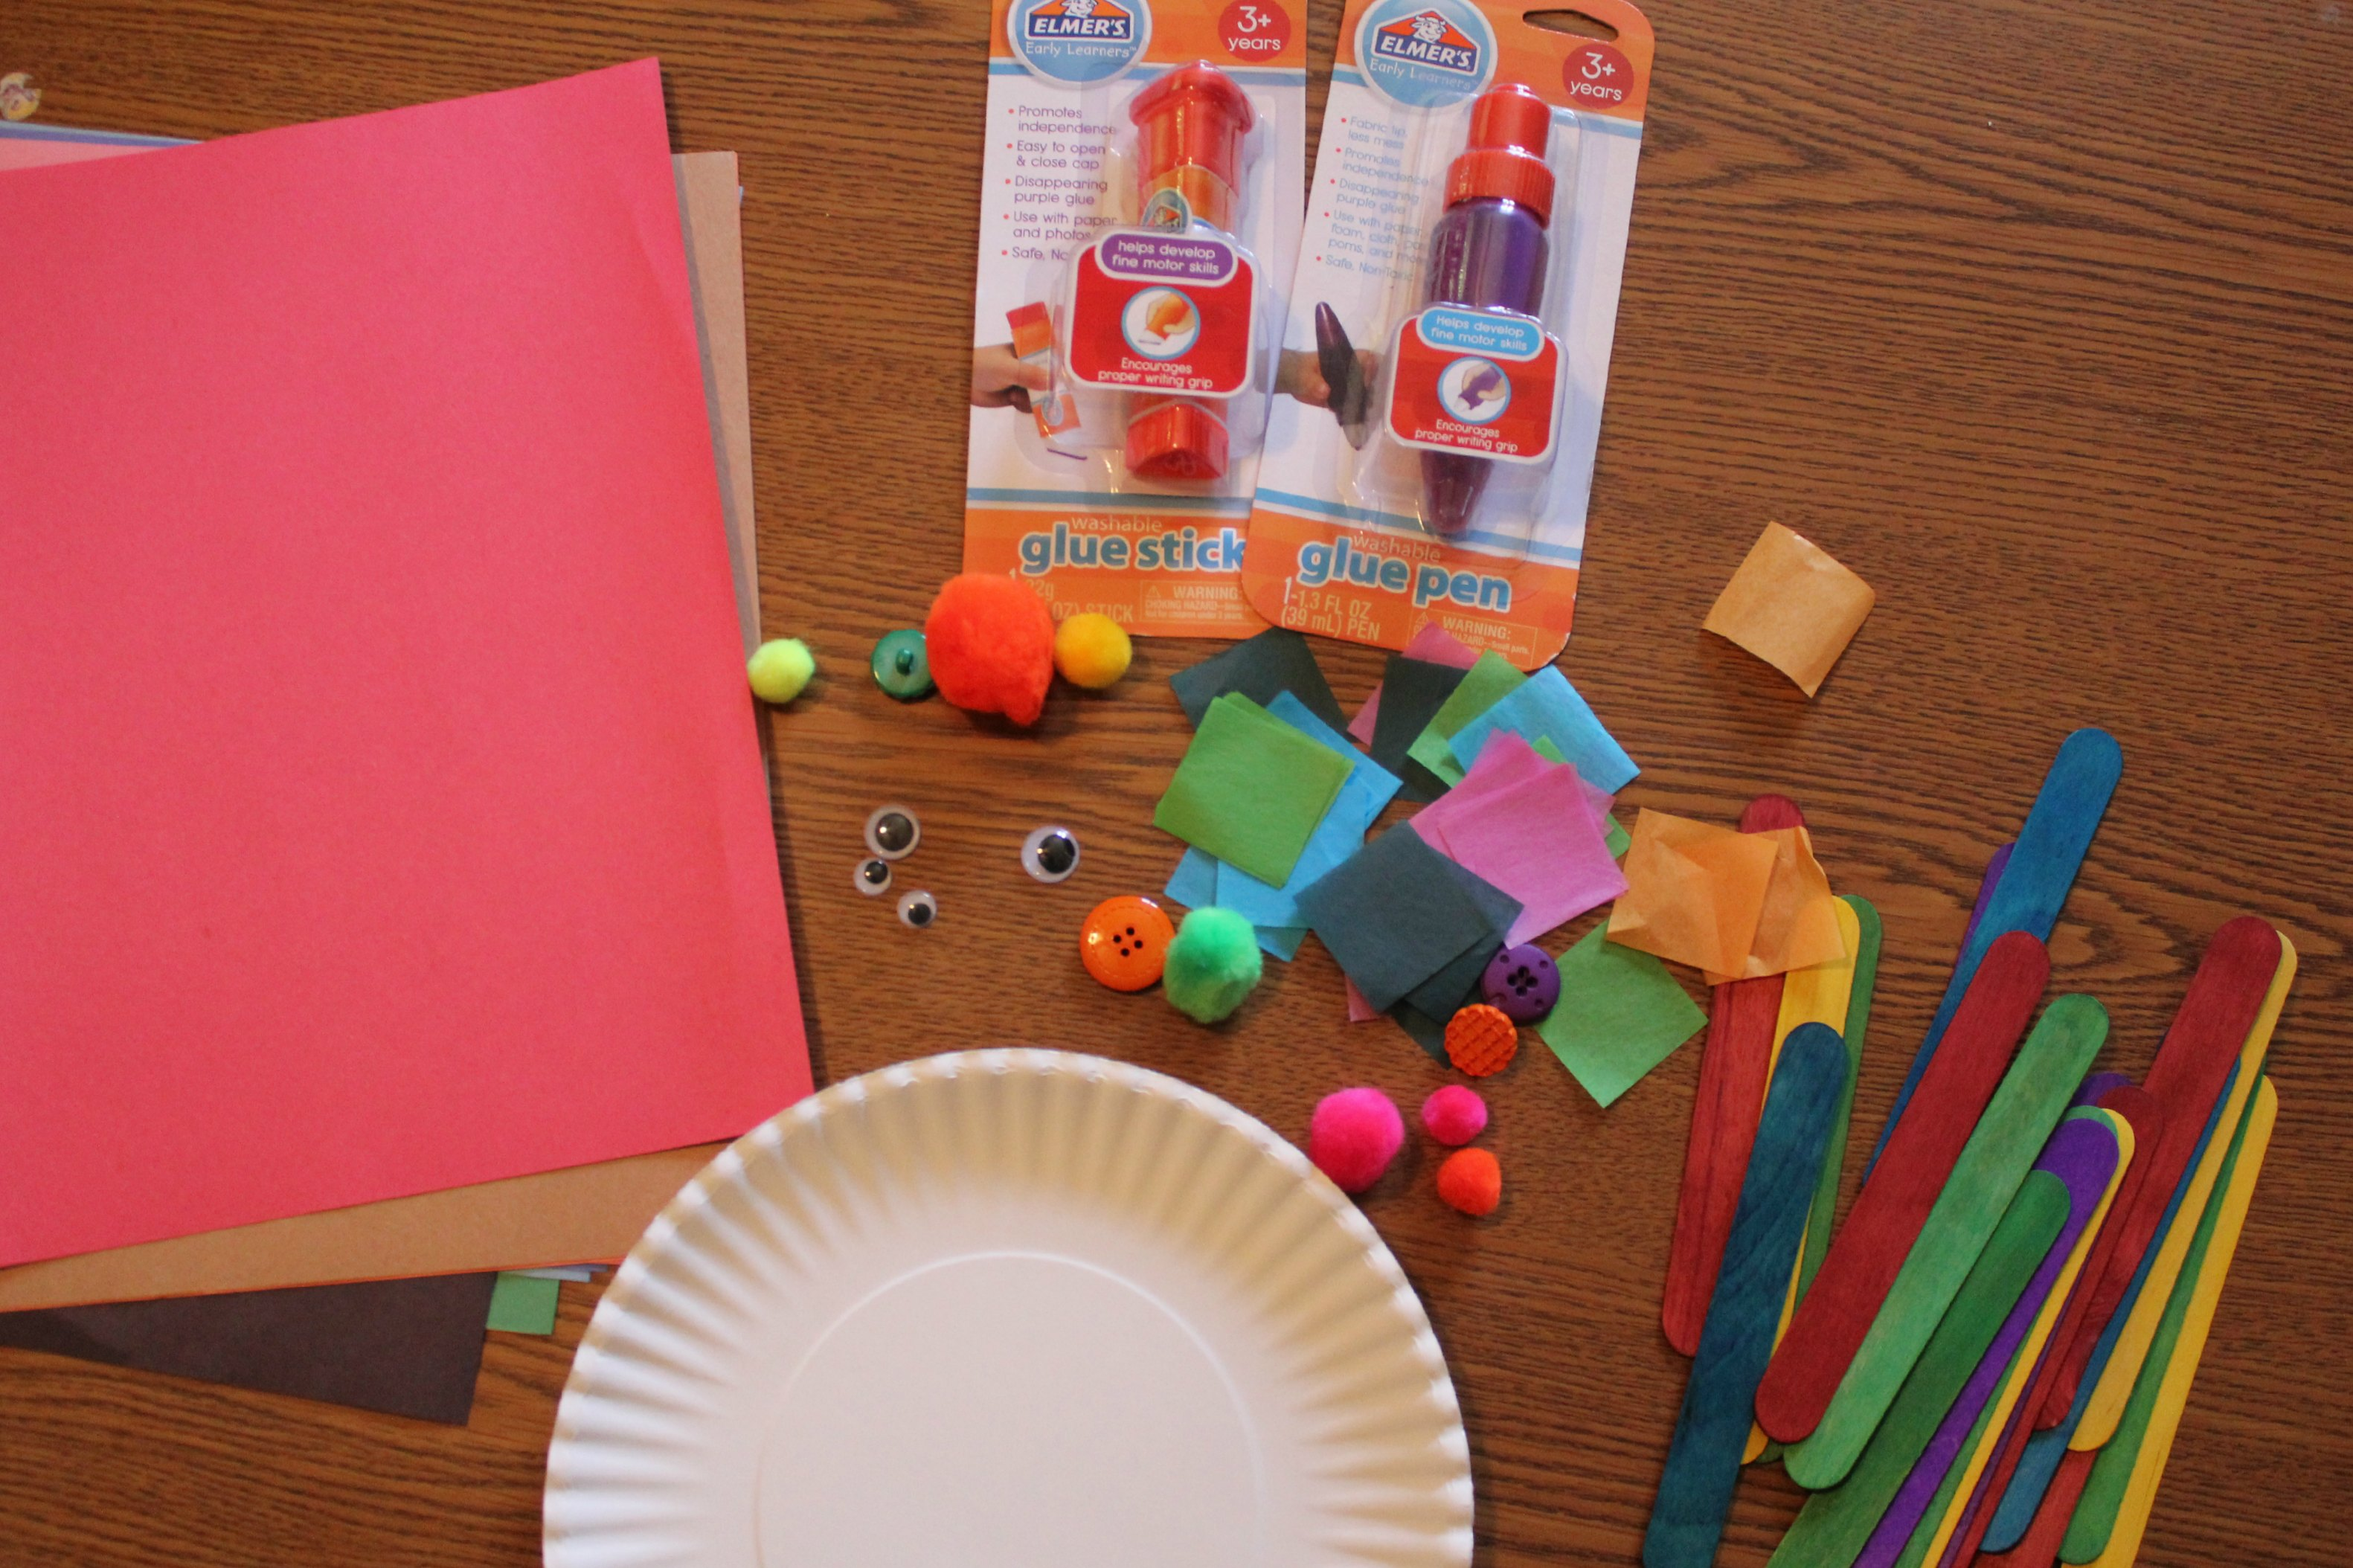 Preschool crafting